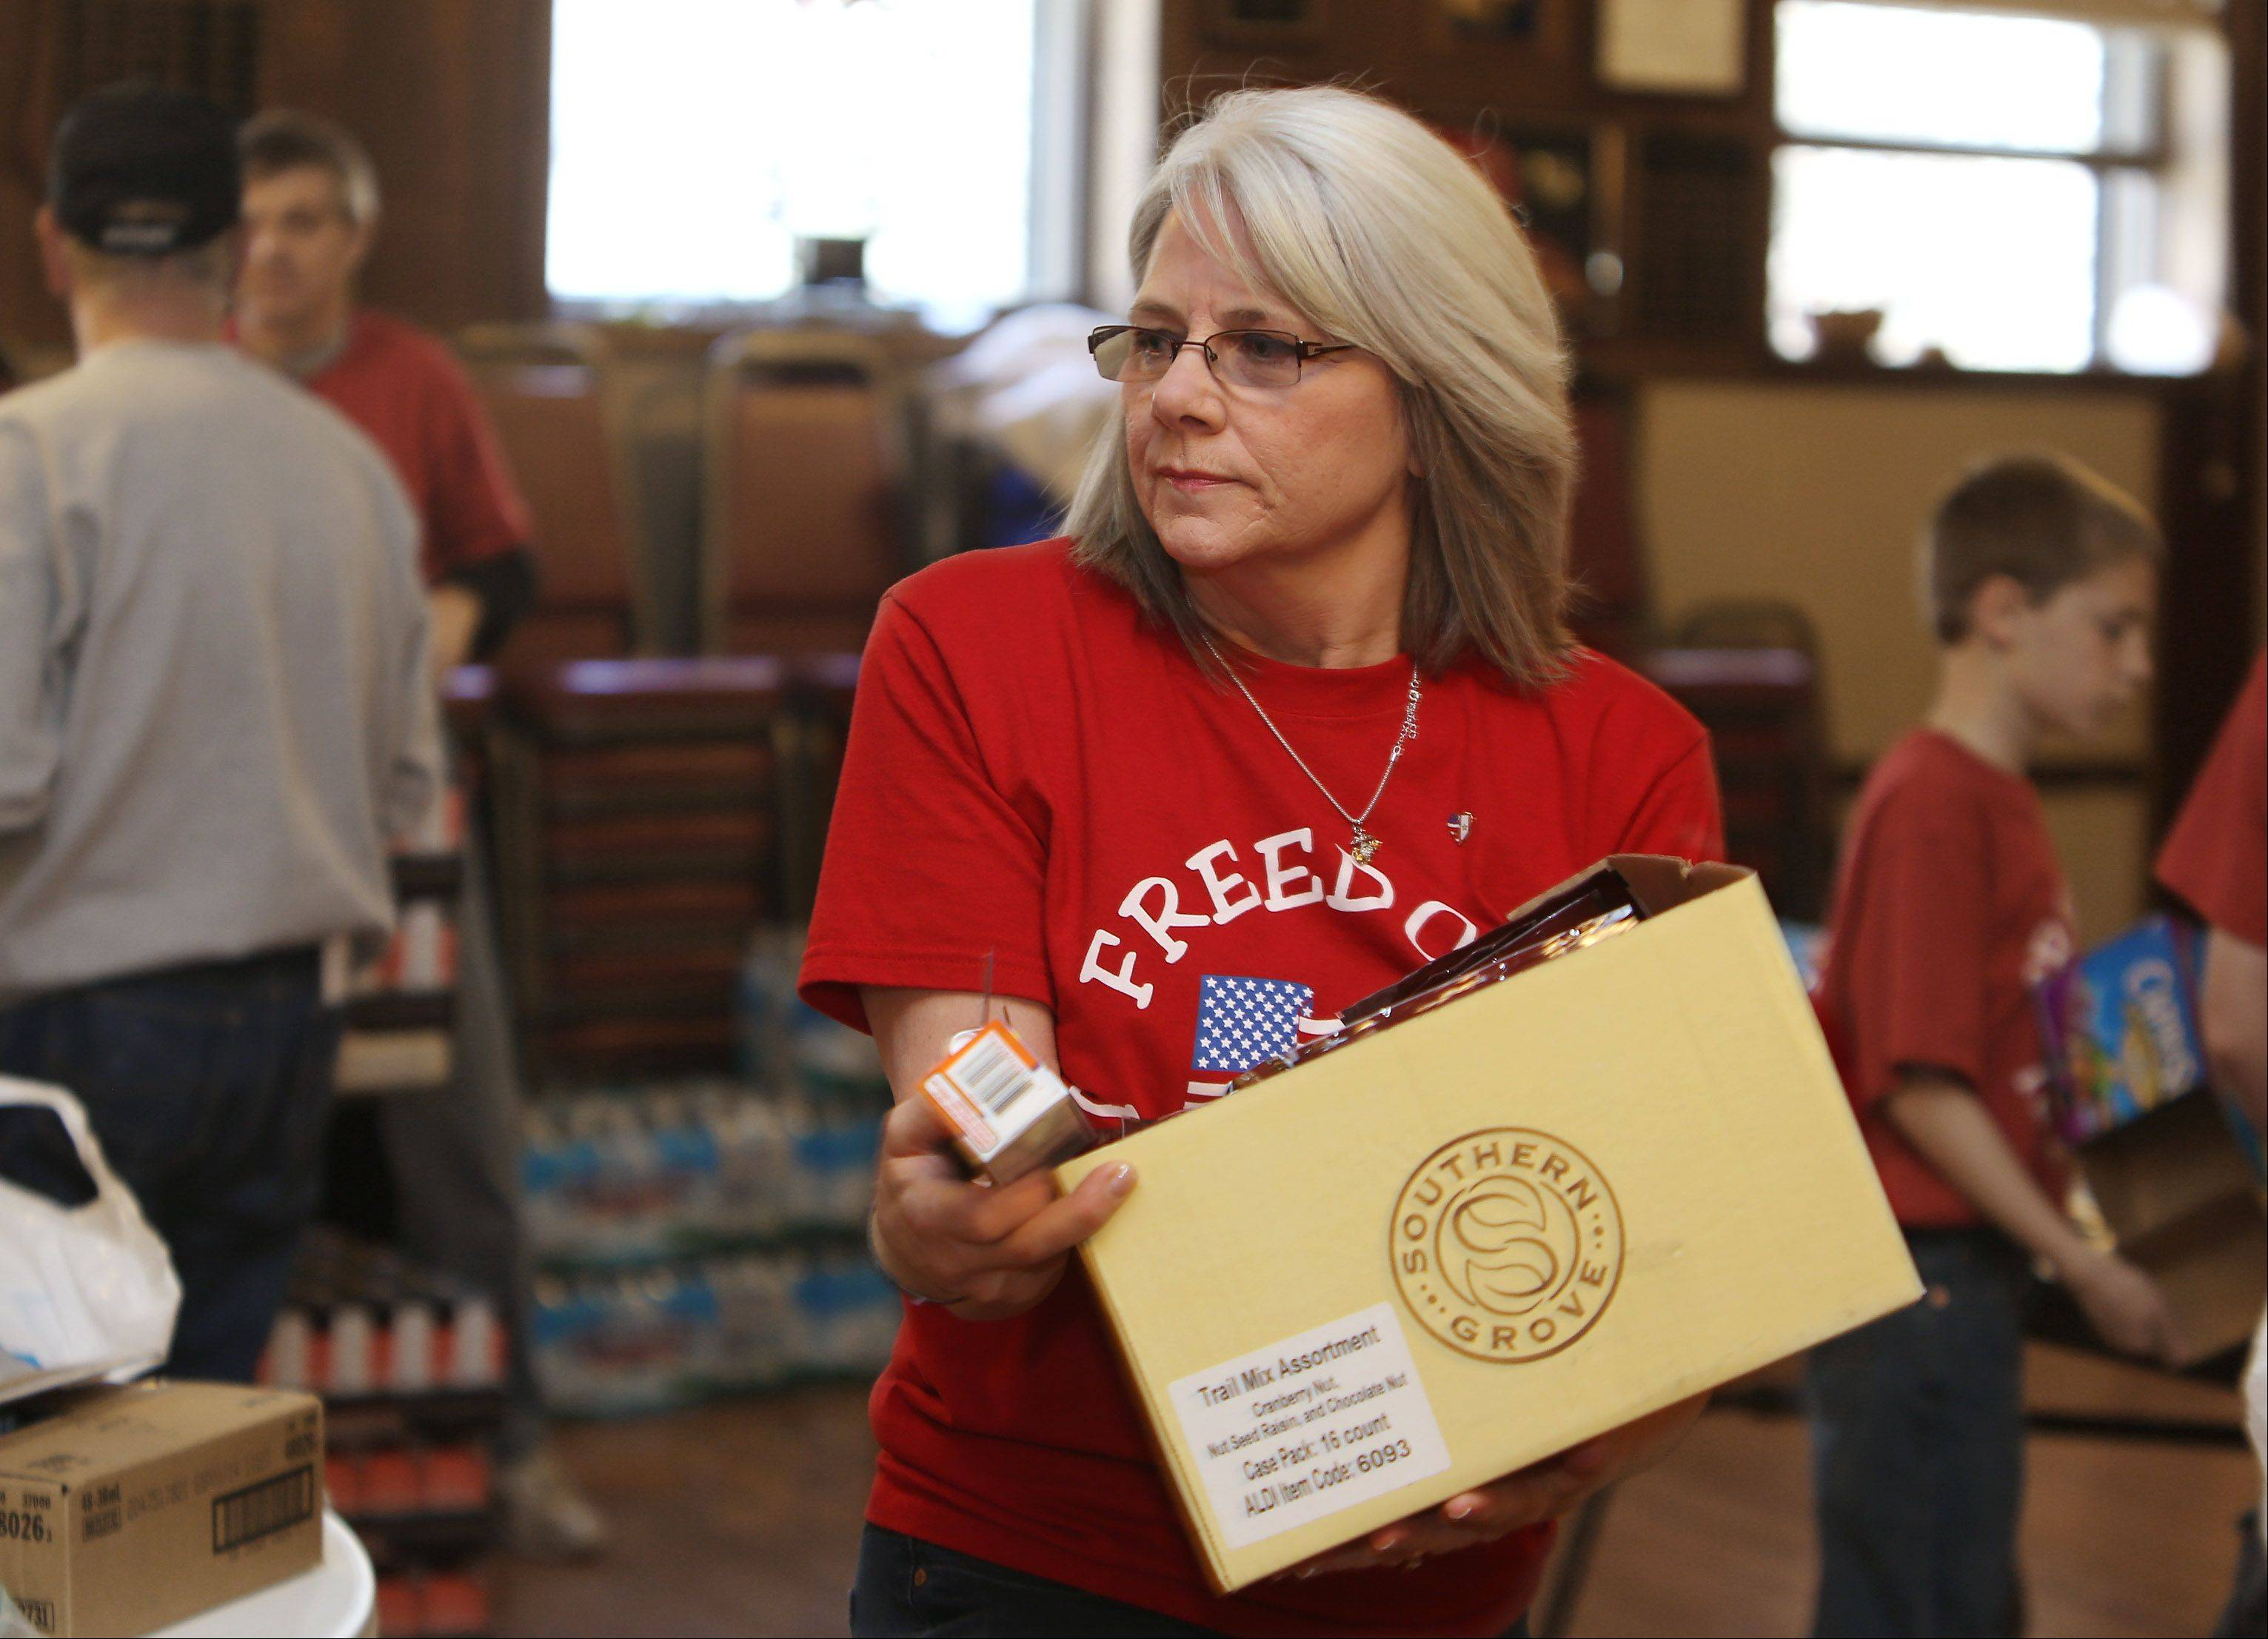 Linda Stack, mother of LCpl. James B. Stack, who was killed in Afghanistan in 2011, helps fill boxes during a collection drive for the military overseas Sunday at the Arlington Legion Post 208 in Arlington Heights.